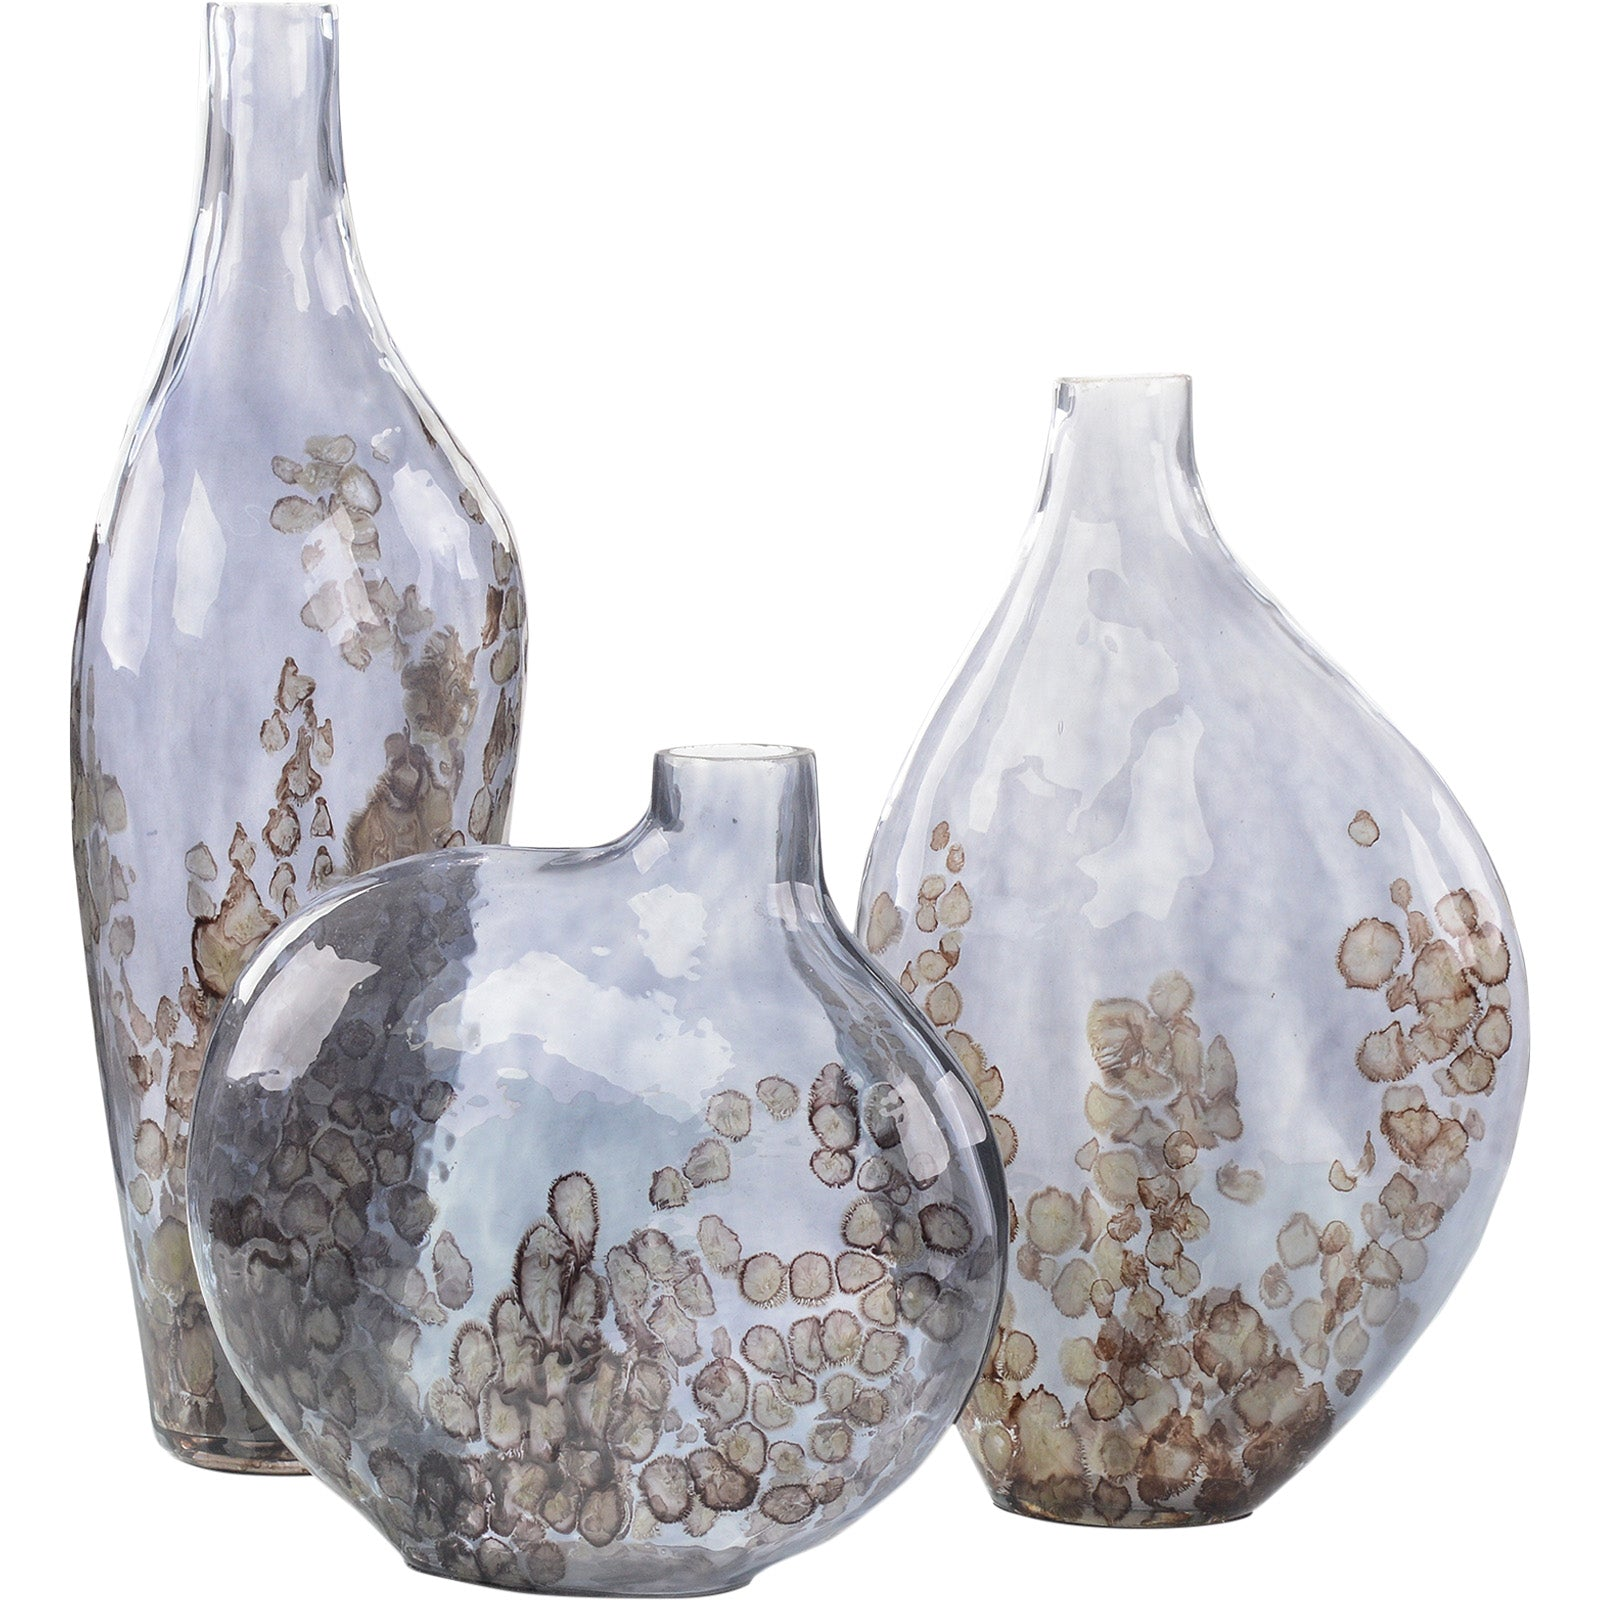 A Set Of Three Sky-Gray Crackled Glass Vases